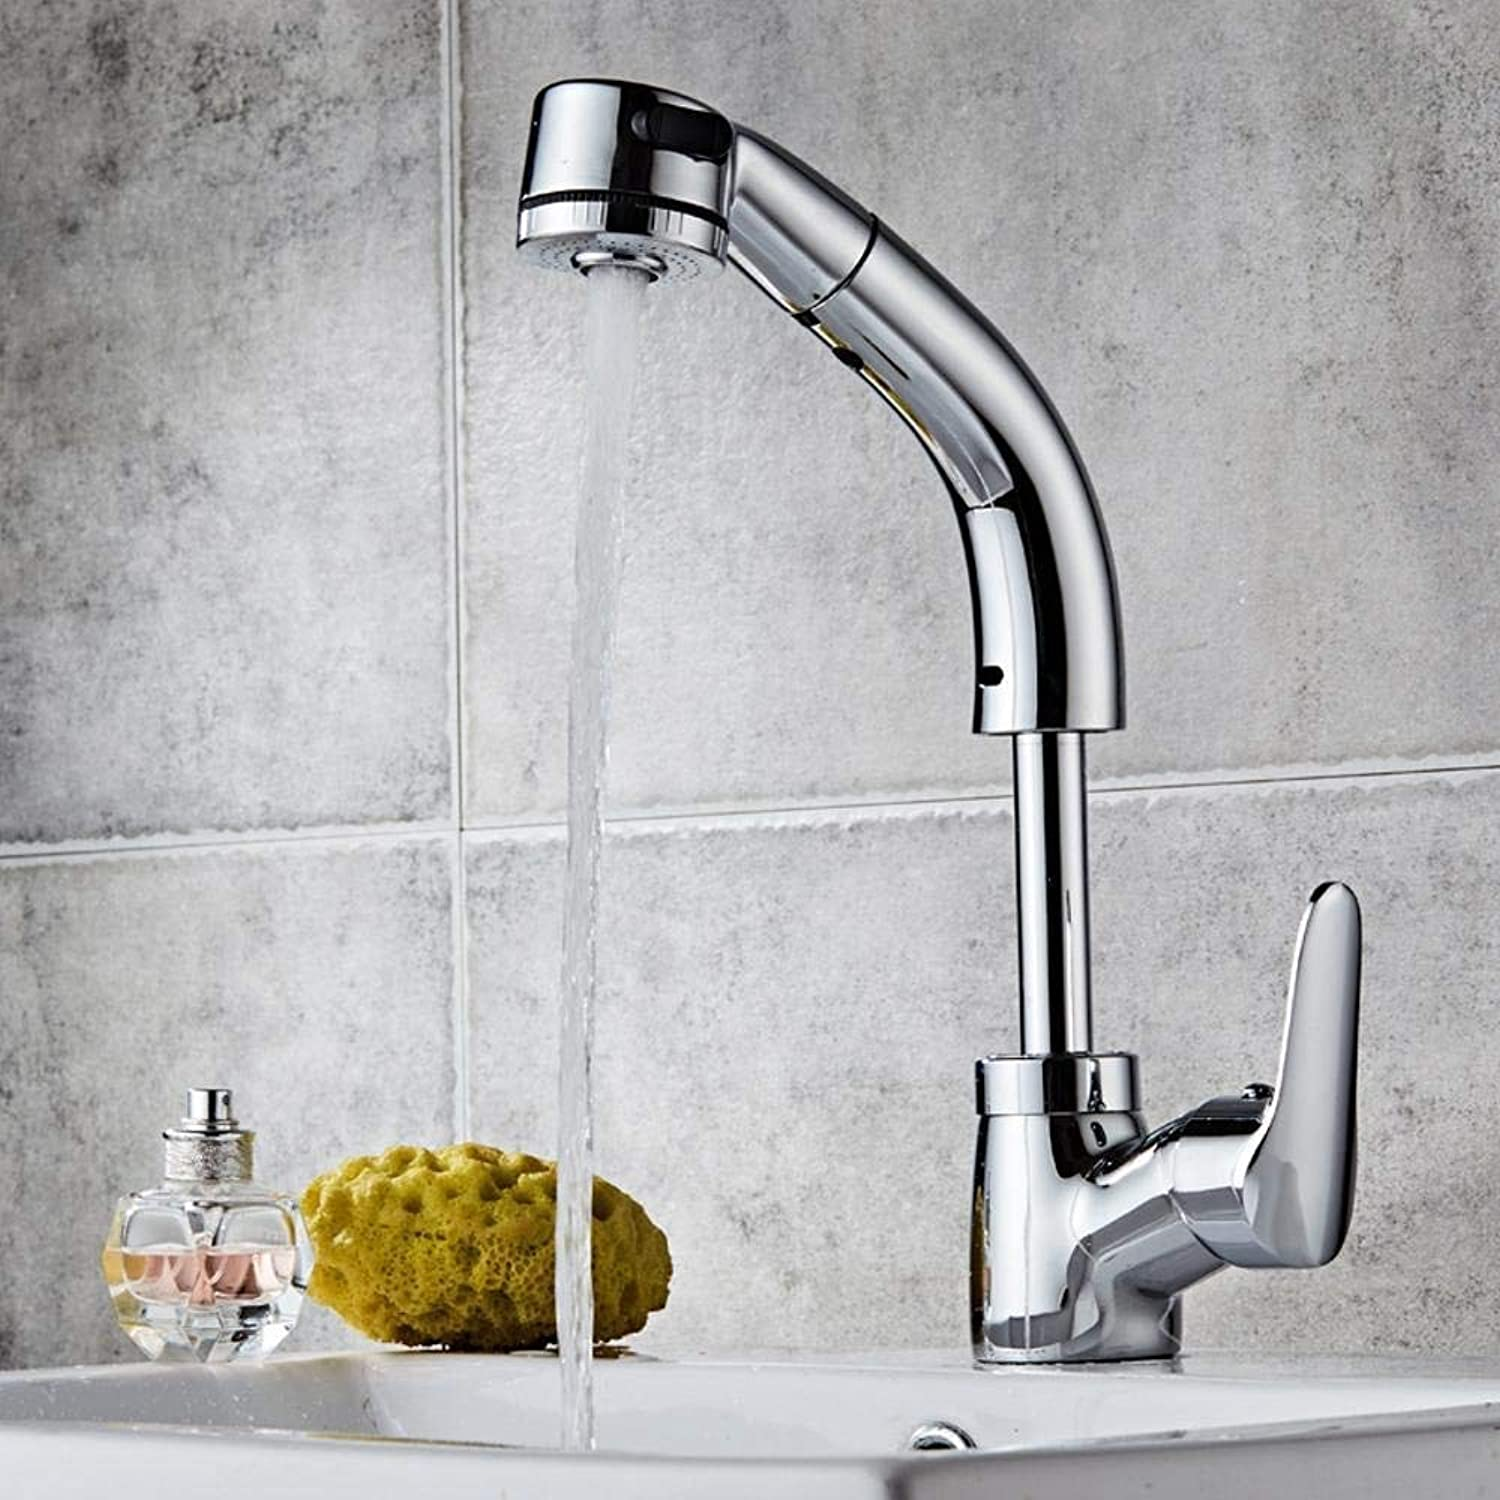 Tap Kitchen Pull Out,Kingdam Copper Pull-Out Basin Faucet hot and Cold Basin wash Basin Faucet can Lift Shampoo Telescopic,A